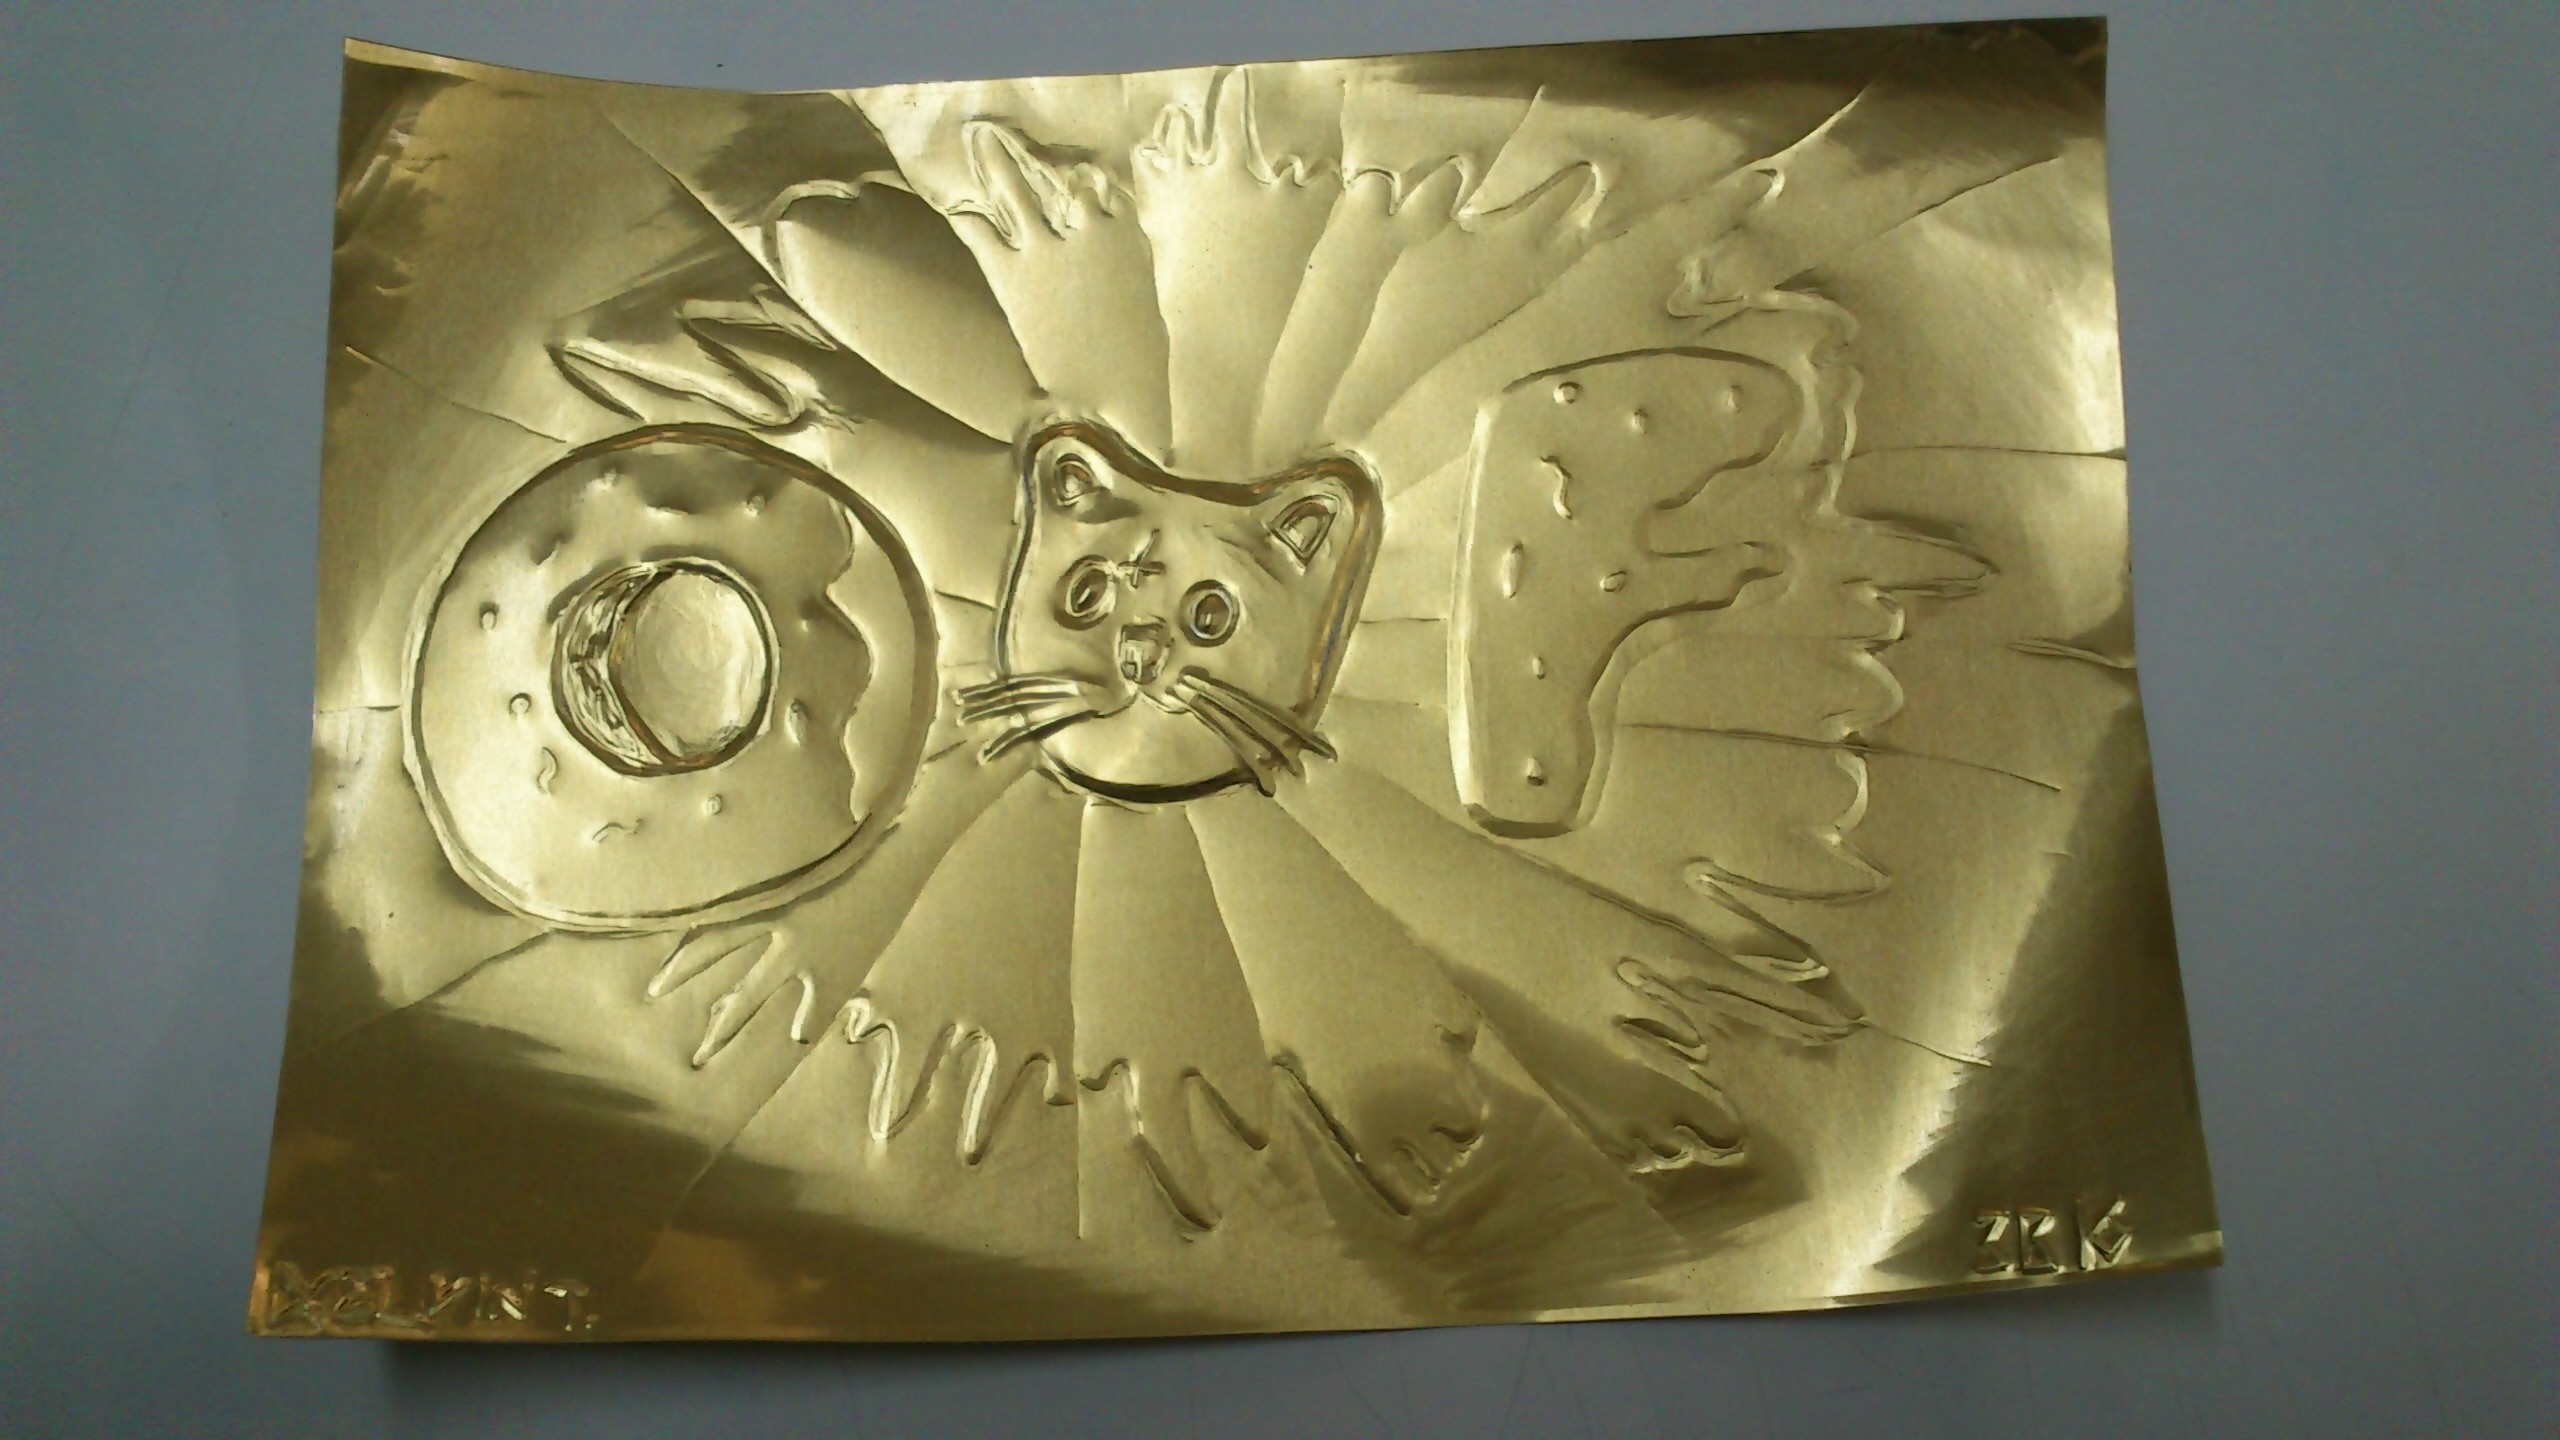 2560x1440 ... Odd Future Logo and Cat on copper board by KelvinTang